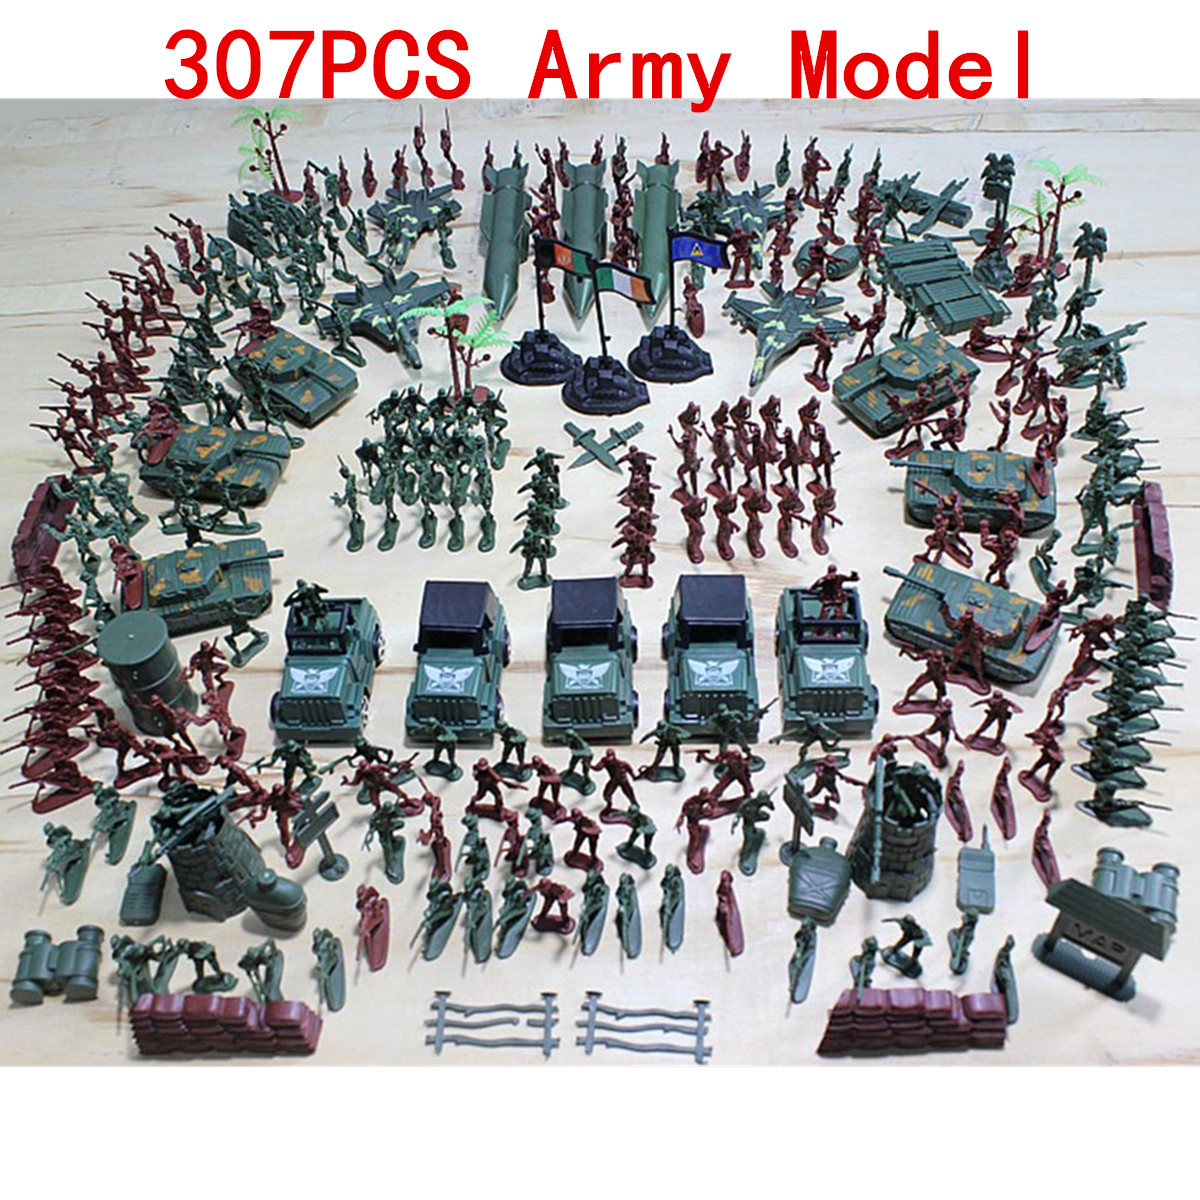 307 Pcs set Soldier Kit Grenade Tank Aircraft Rocket Army Men Sand Scene Model Toy by